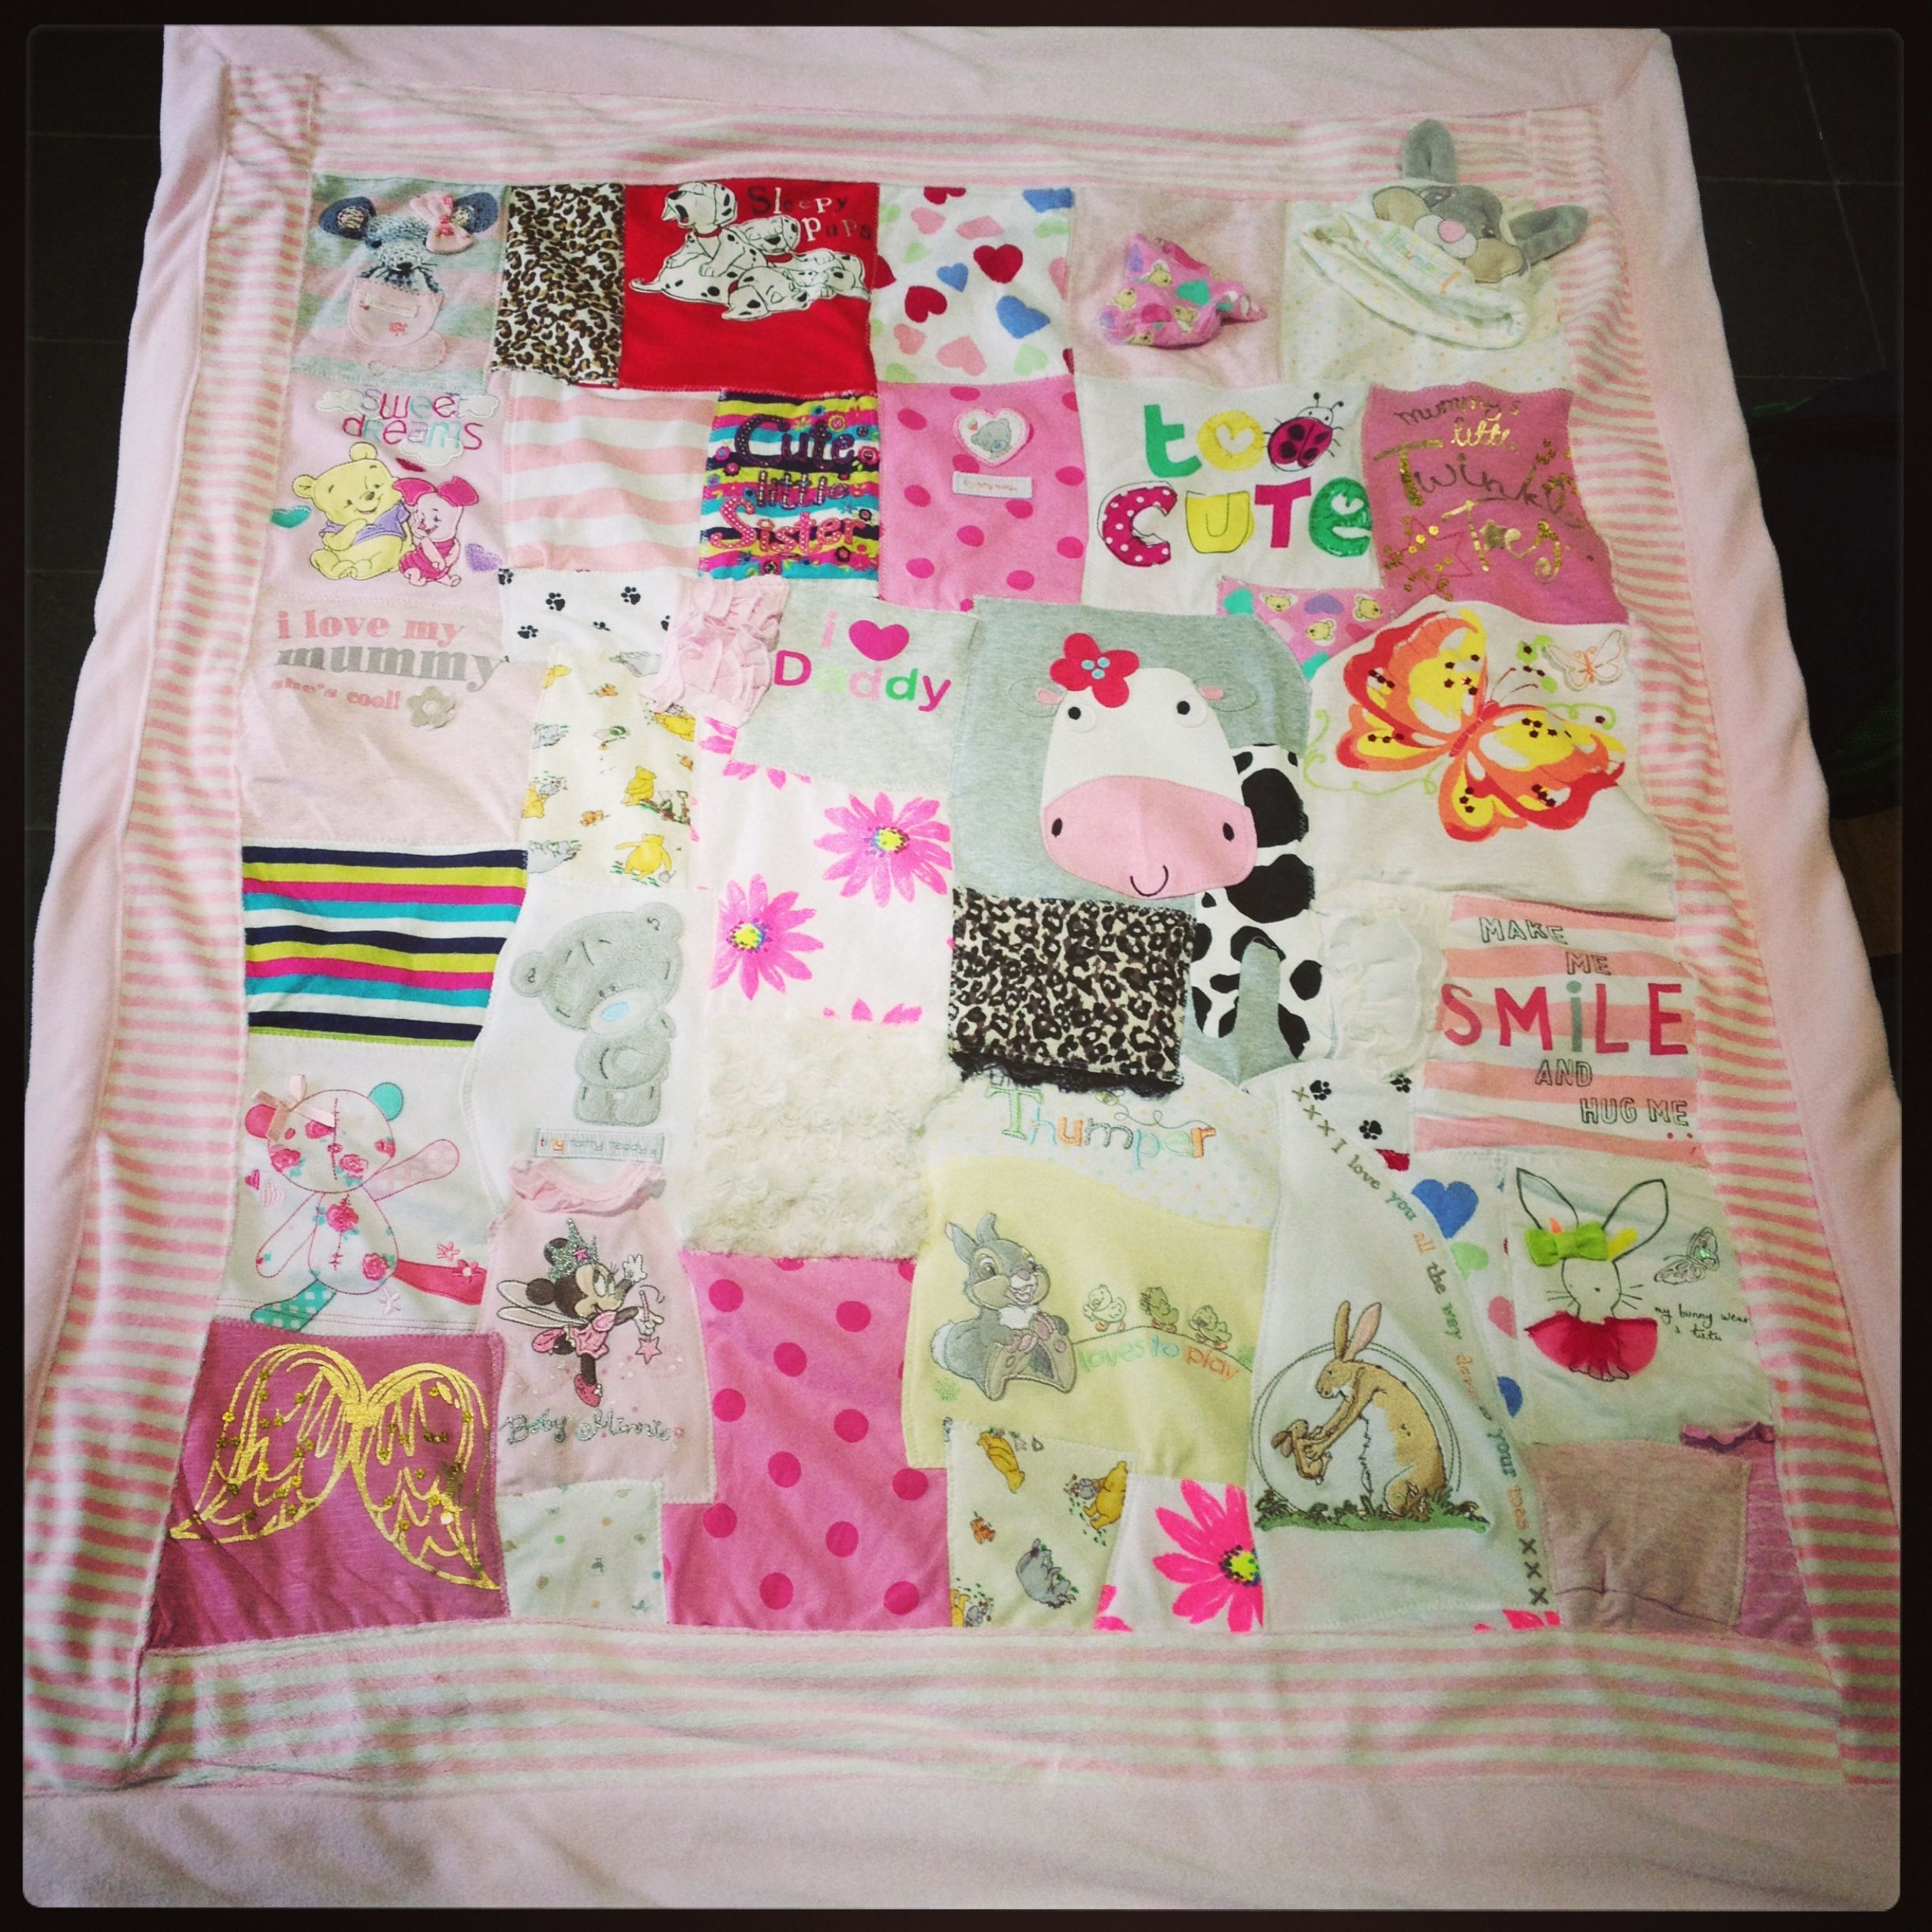 61 50 Plus P Cot Sized Memory Blanket Made From Baby Clothes Cot